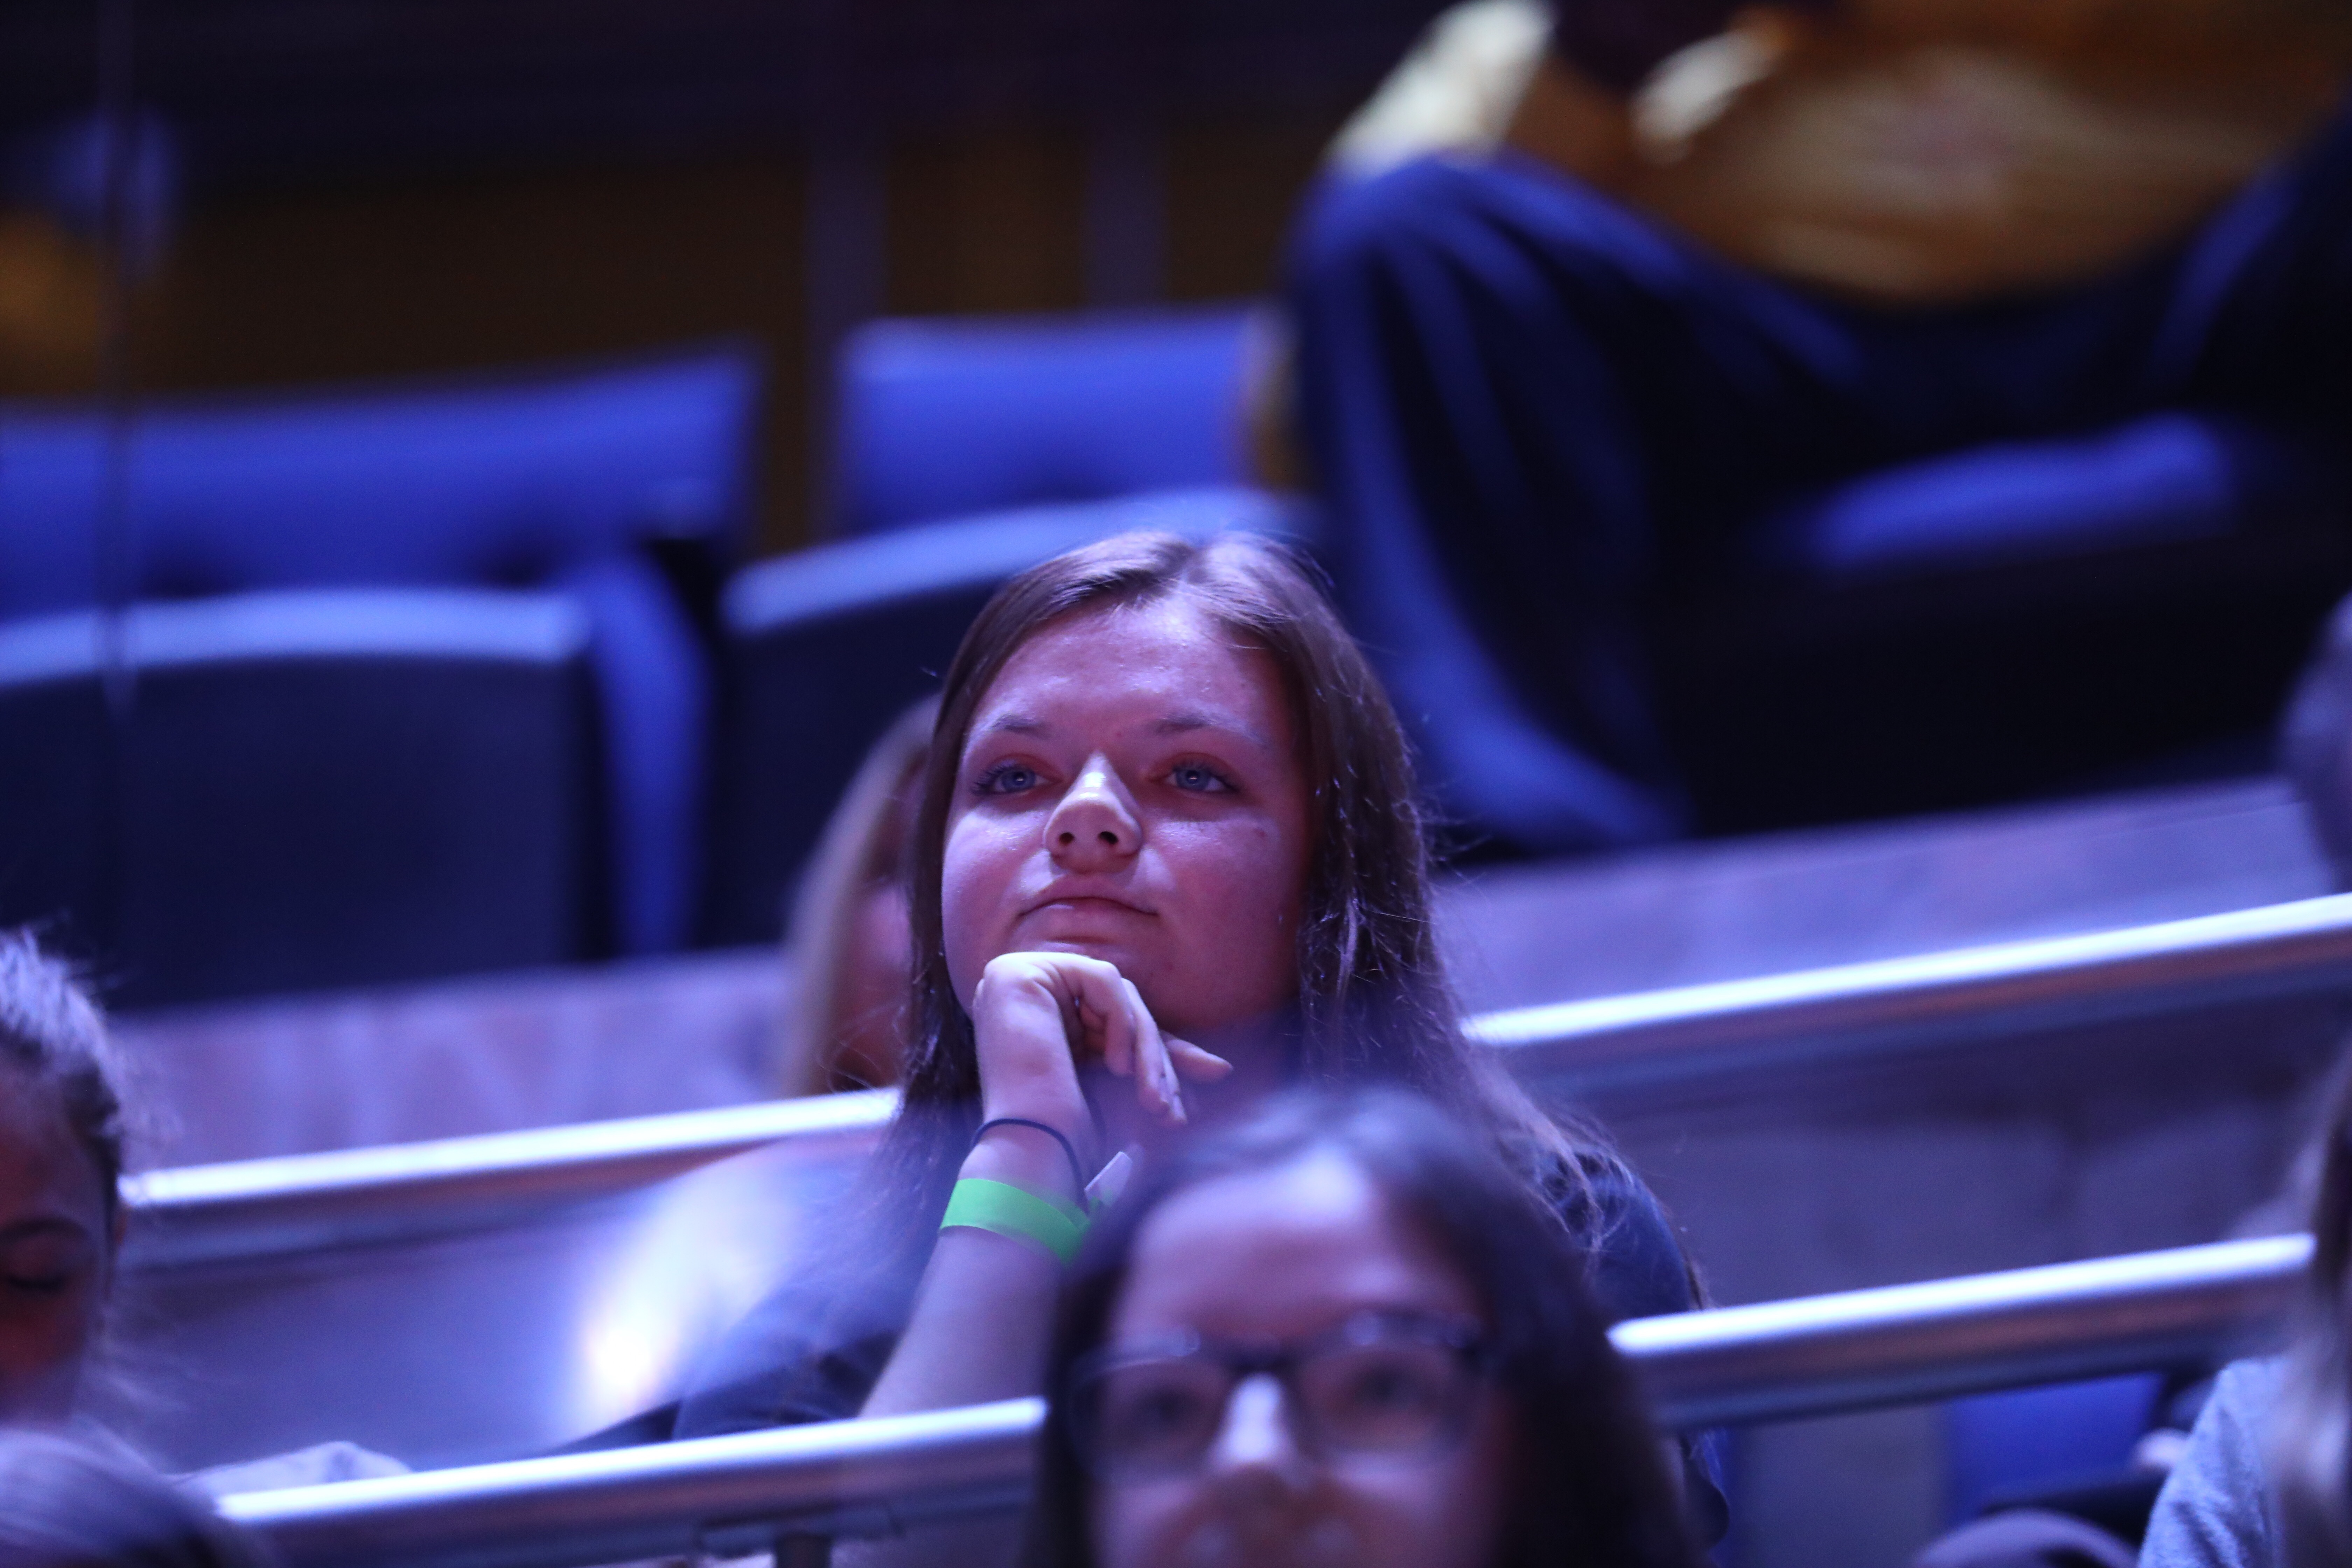 Kaileigh Murphy, 21, a senior at the College of New Jersey, listens to her question answered from U.S. Secretary of Education Betsy DeVos.